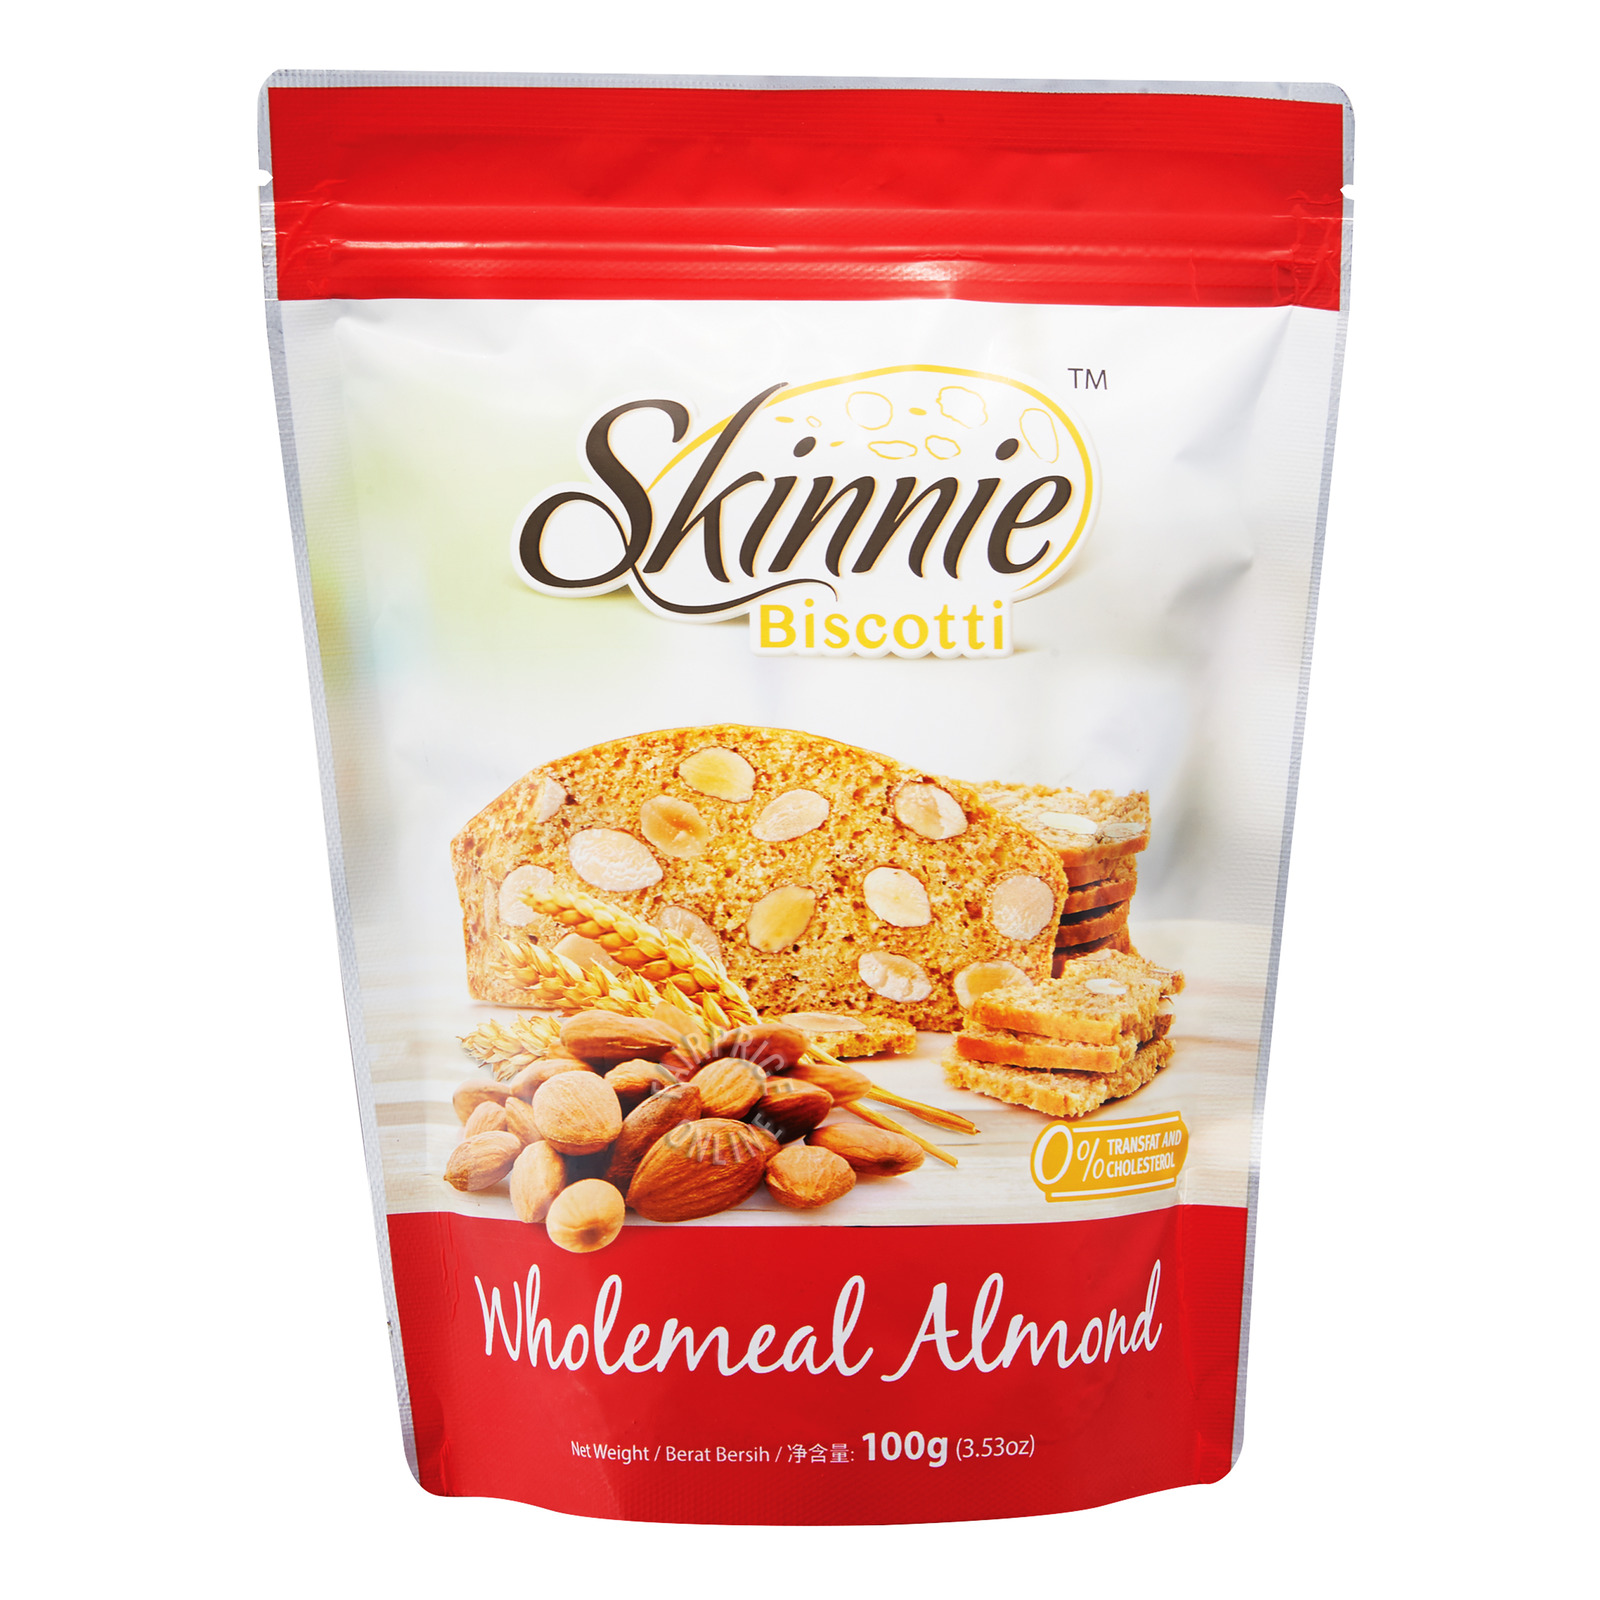 Skinnie Biscotti - Wholemeal Almond